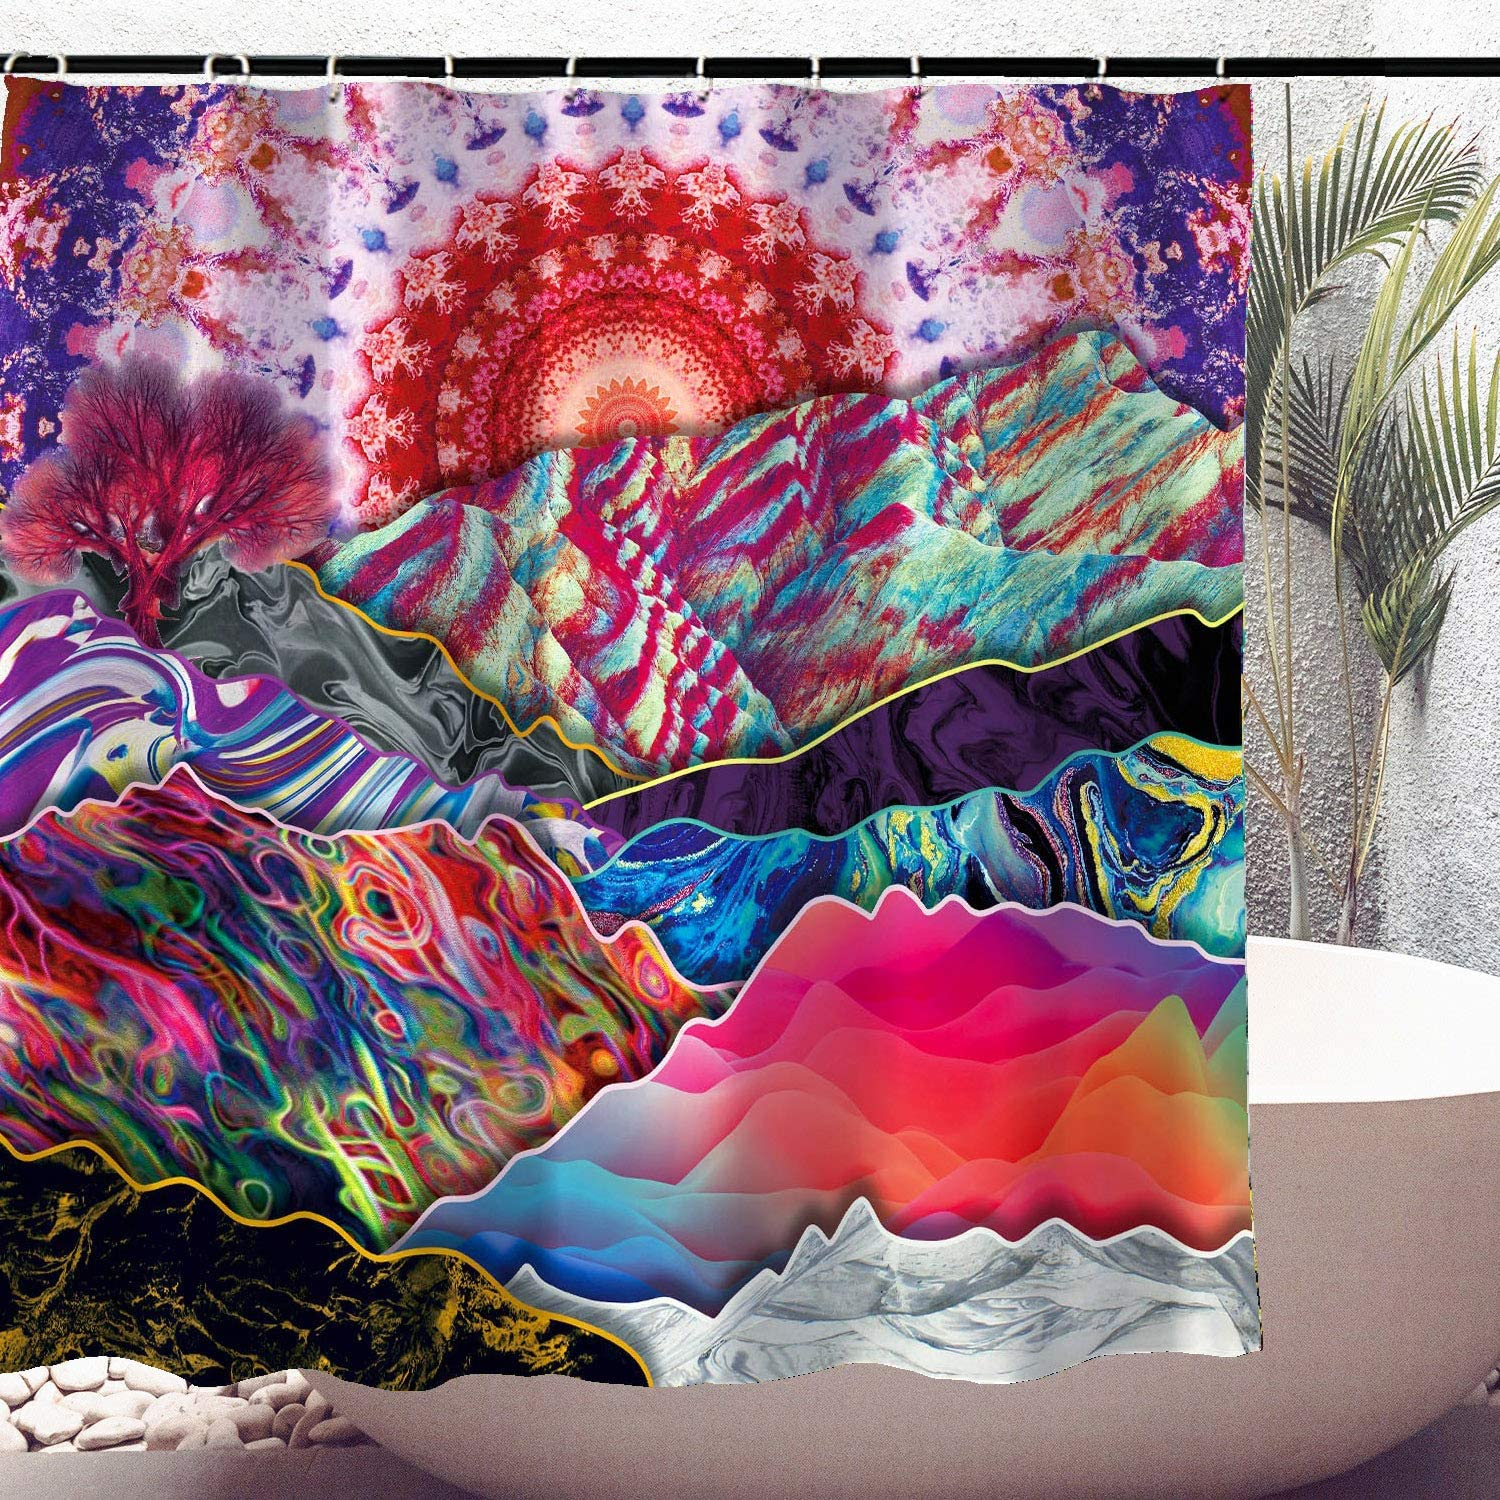 Psychedelic Shower Curtain Trippy online shop Mountain Mushrooms La Fixed price for sale Colorful